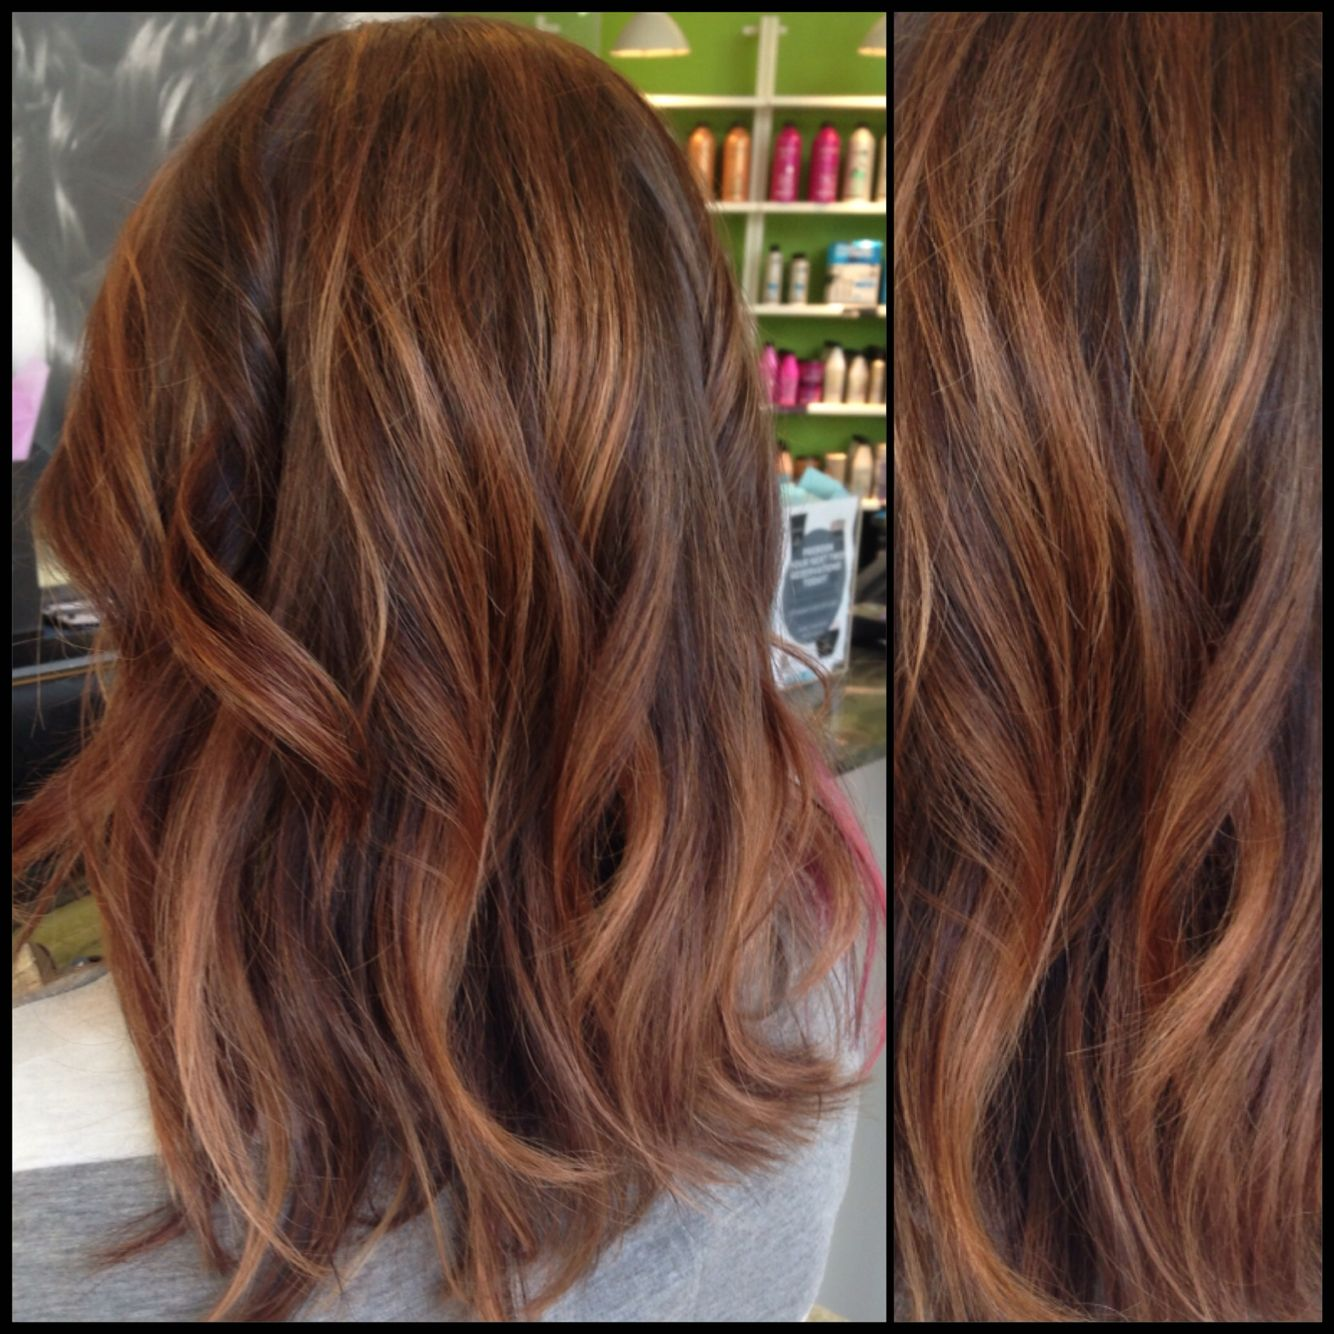 Caramel And Brown Hair With Rose Gold Accents Hair Styles Balayage Hair Hair Color